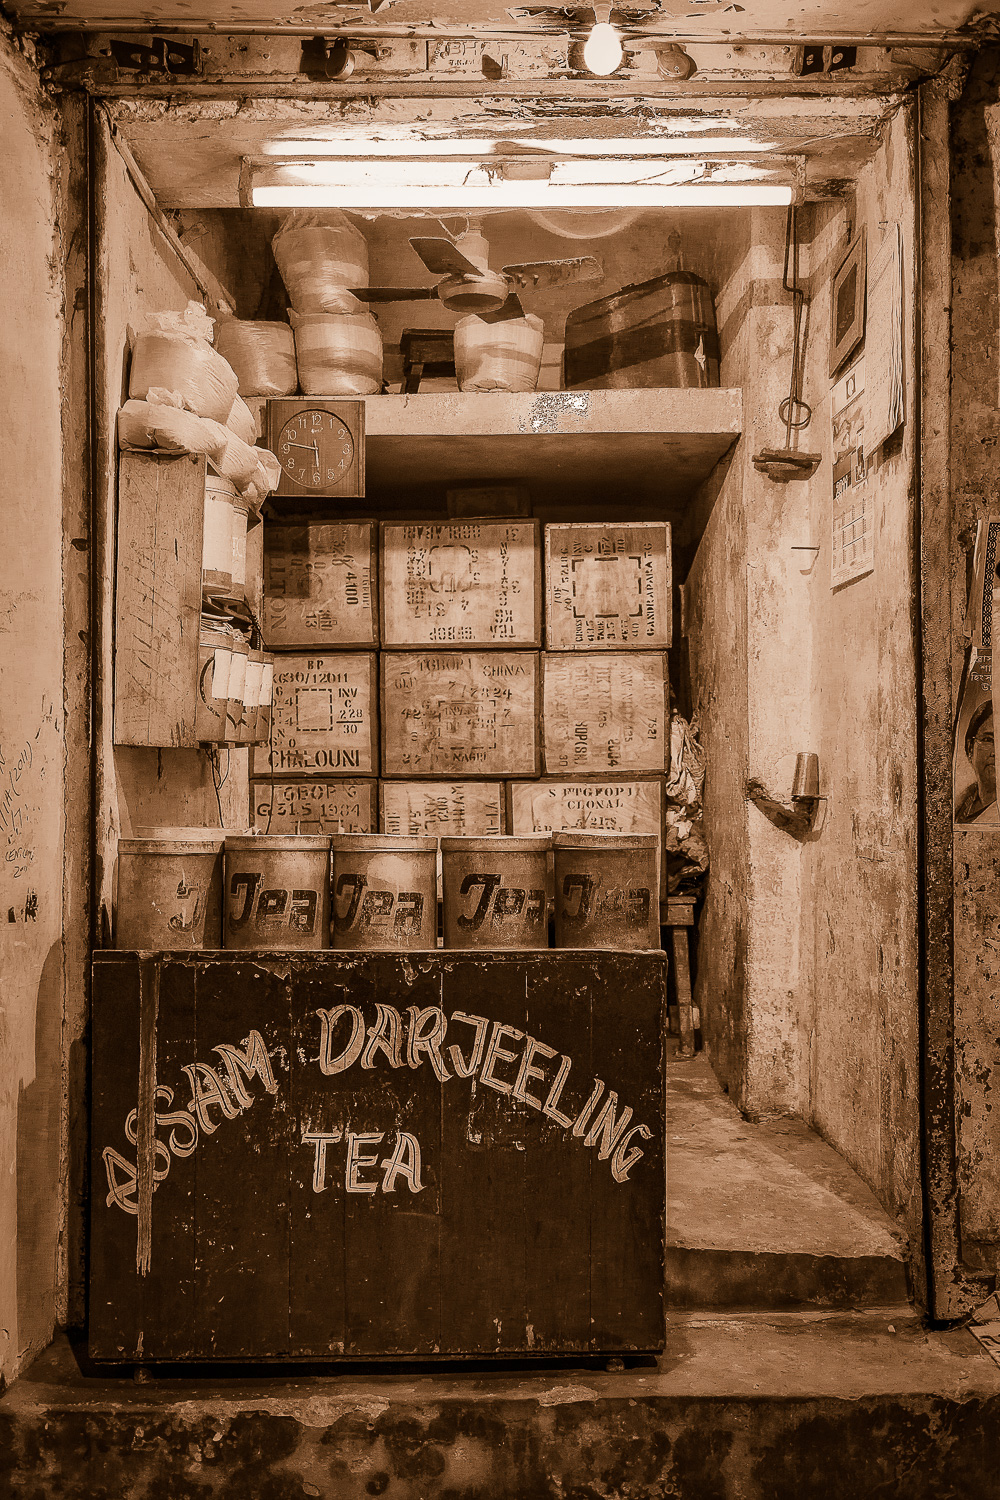 A    nostalgic view    of a    tea store    displaying    Assam Darjeeling Tea    in a street market in    Kolkata, India   .